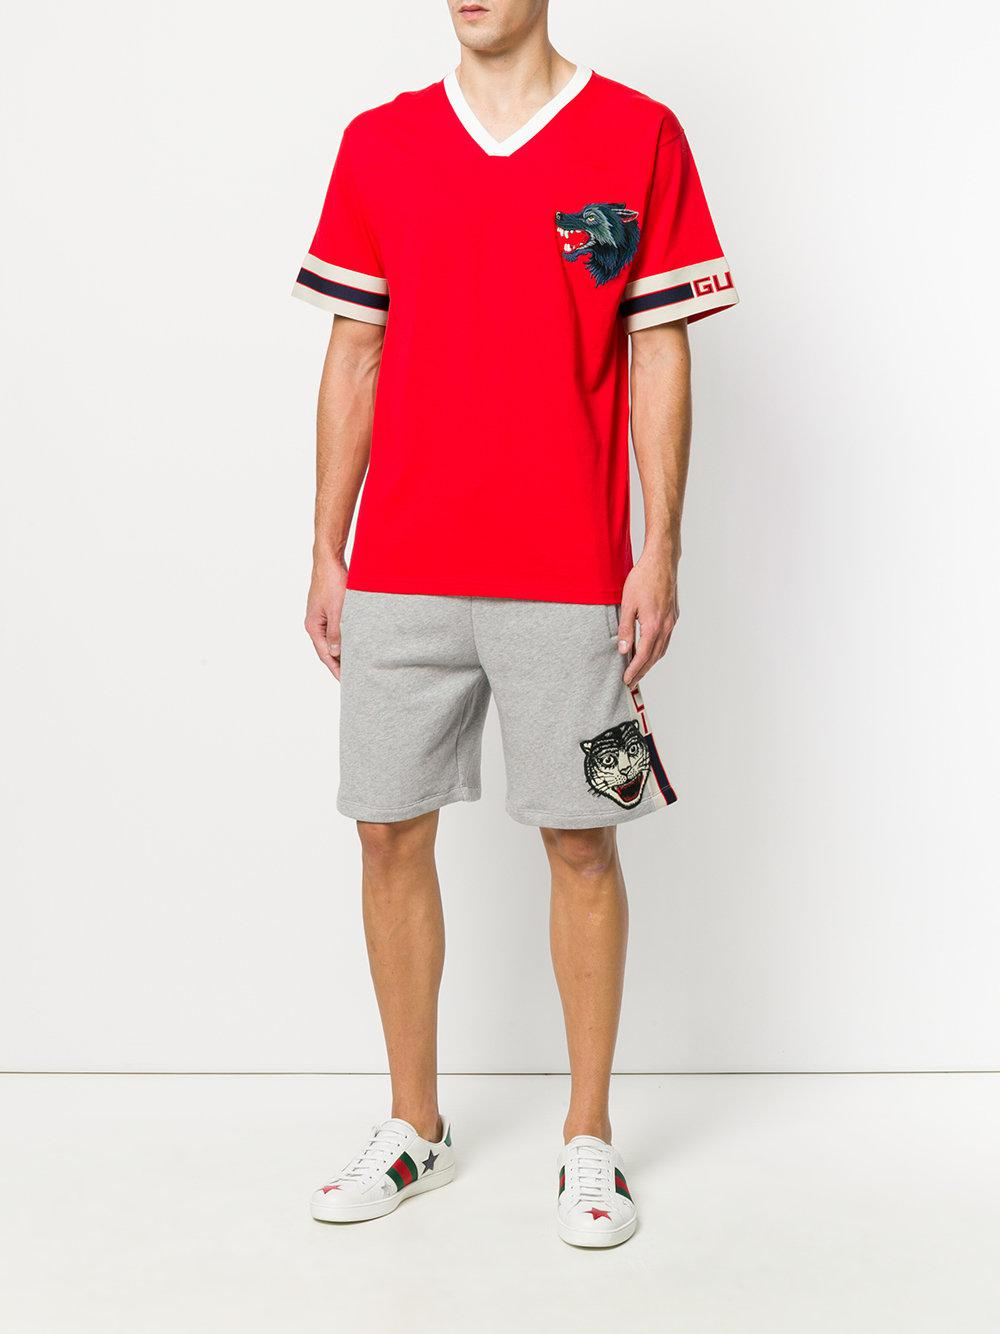 5c1704058dc2 Gucci Wolf Head Embroidered T-shirt in Red for Men - Lyst